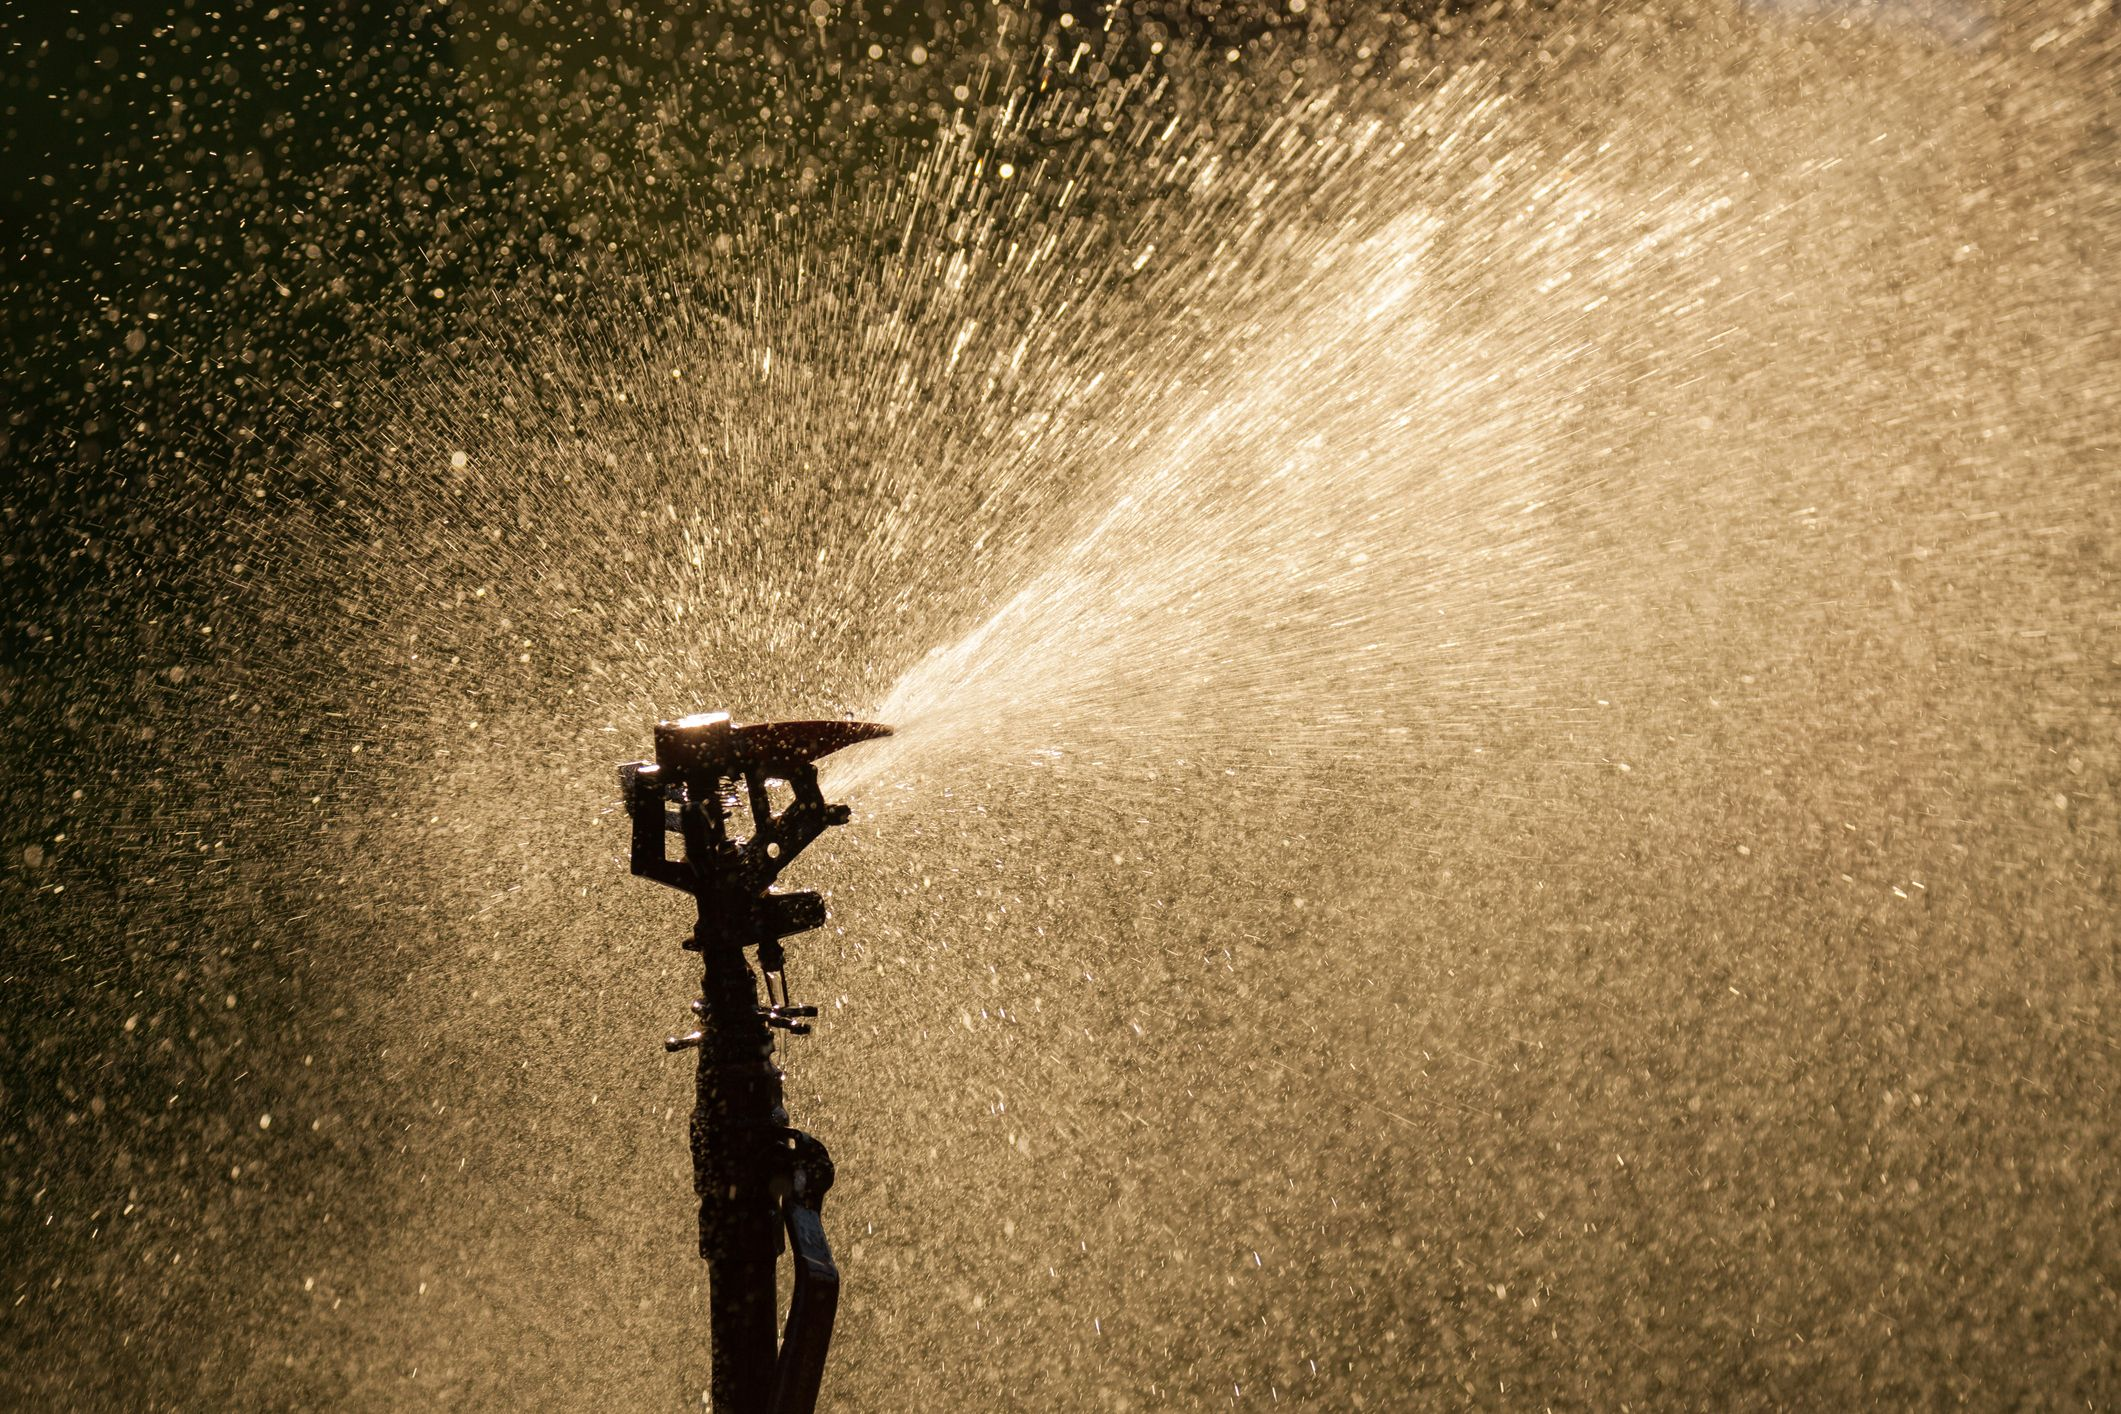 Close-Up Of Water Spraying From Sprinkler